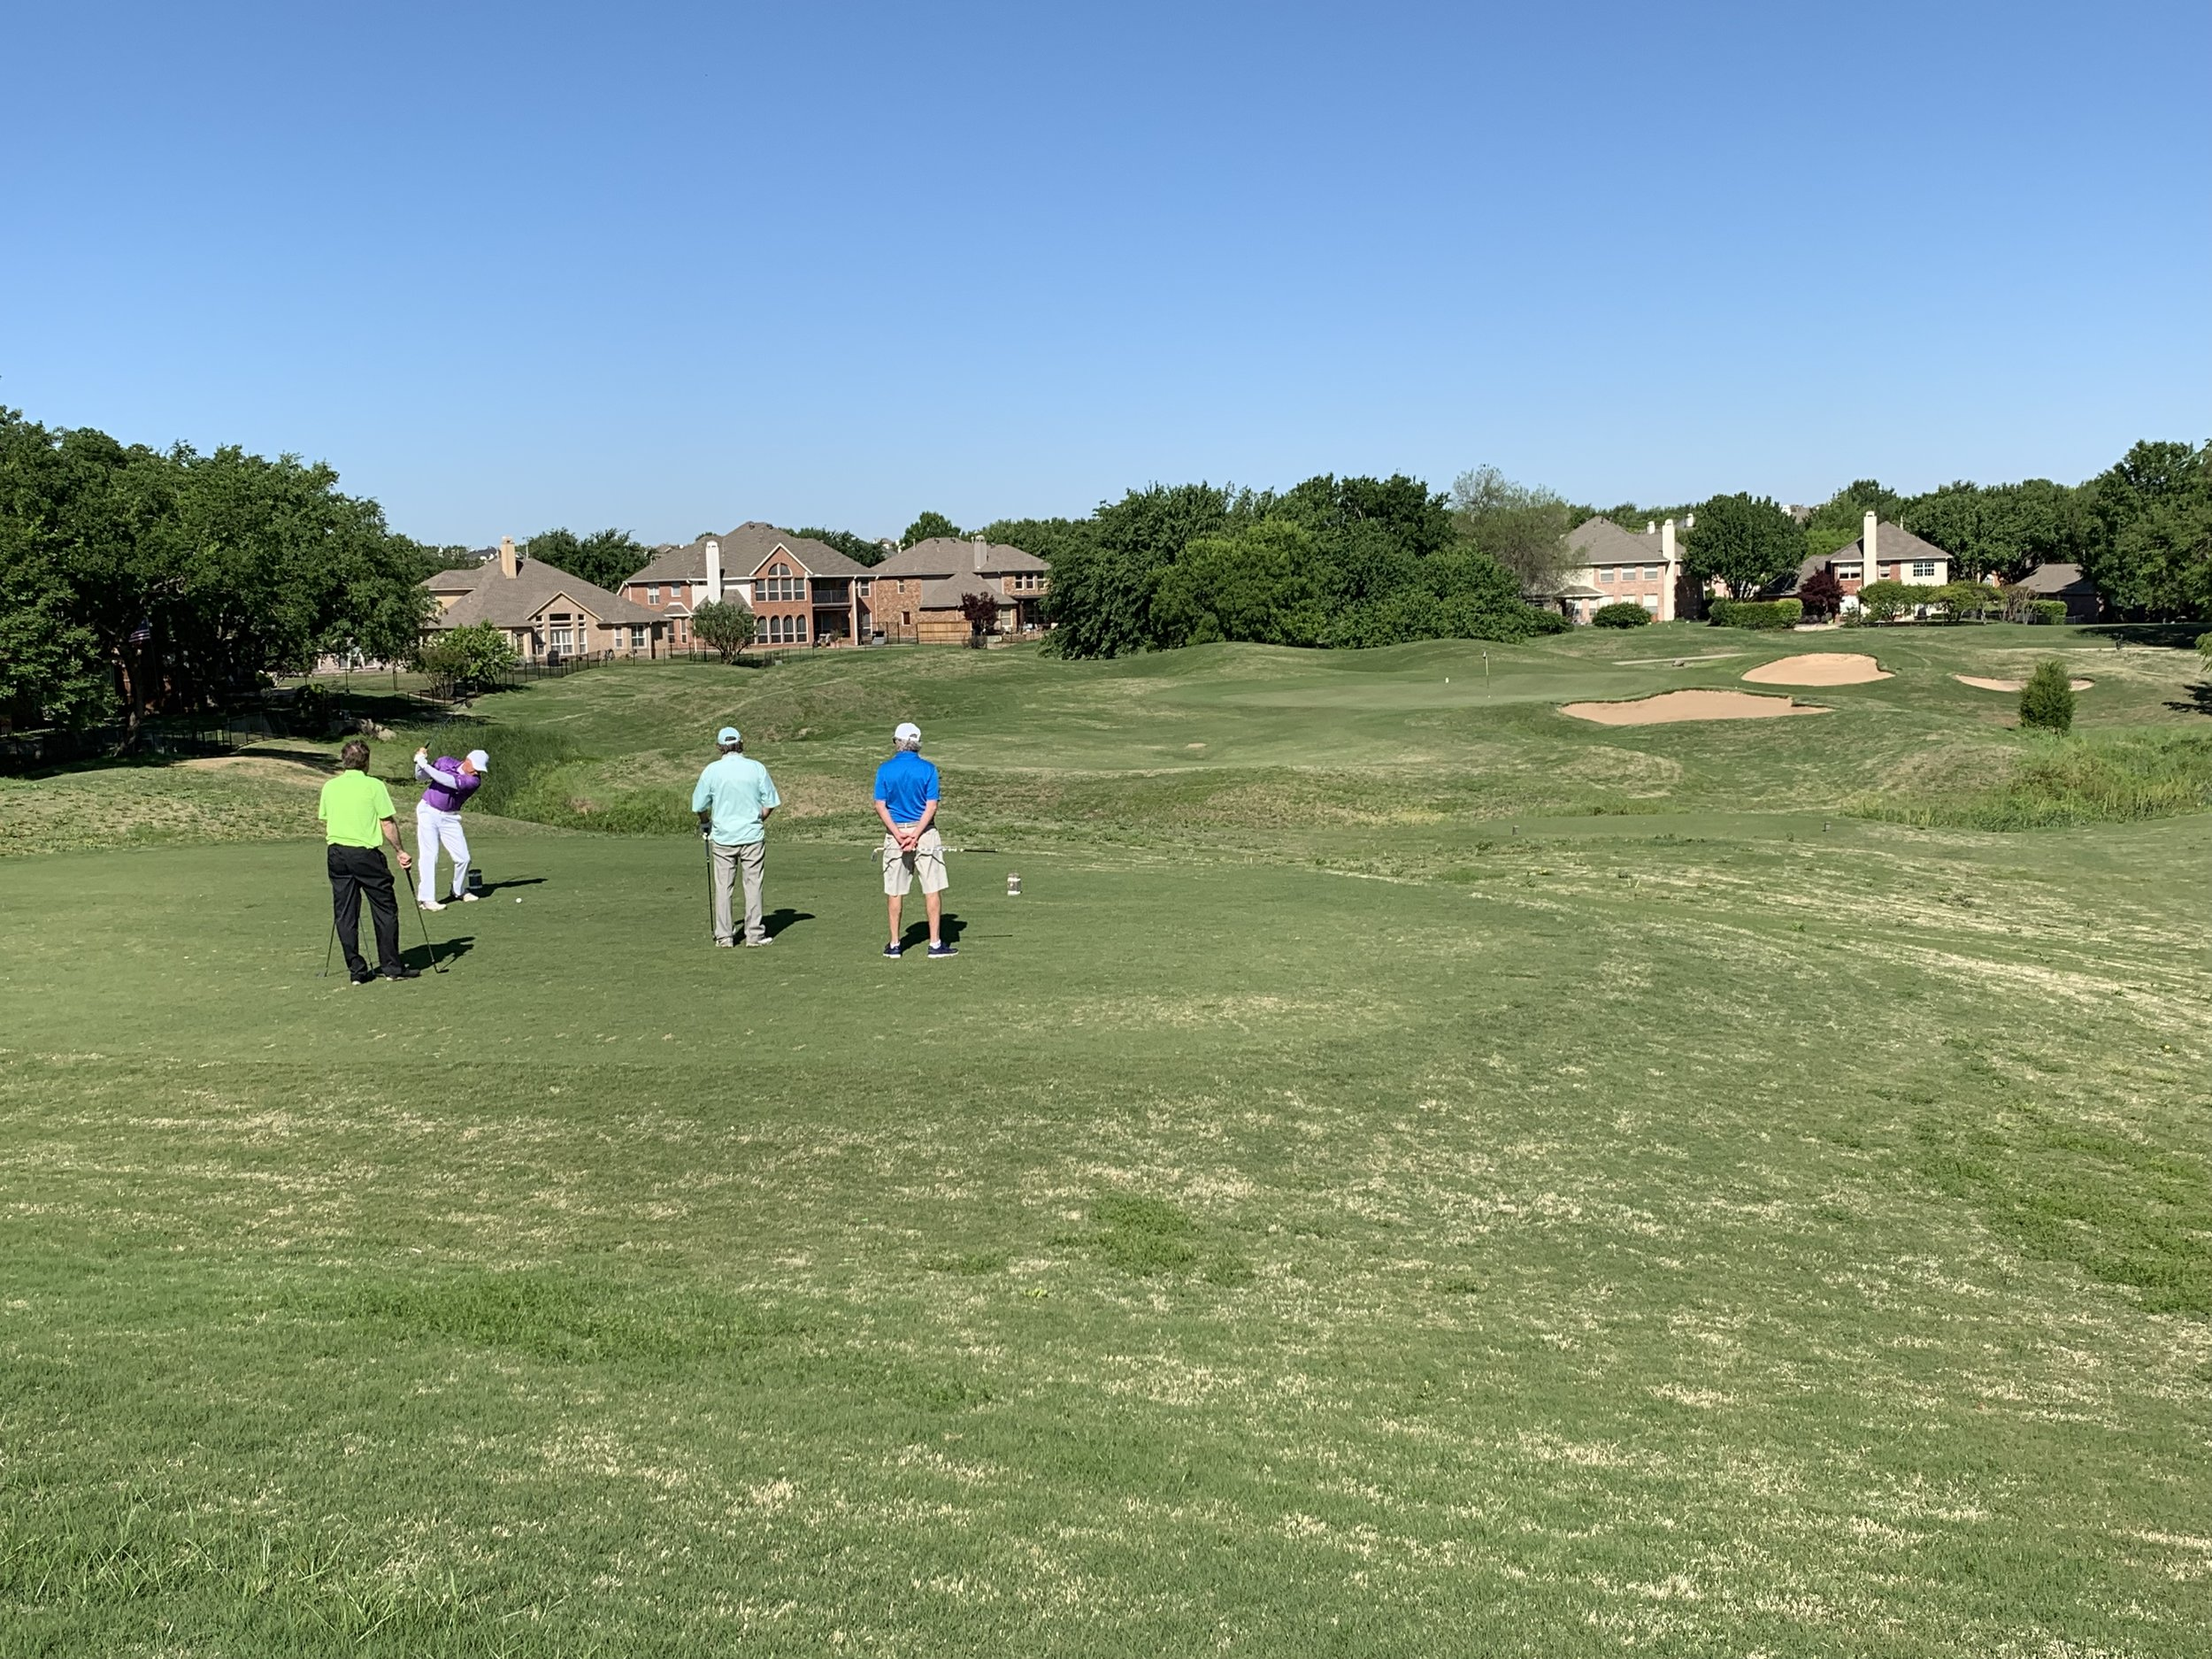 Photo Apr 26, 9 56 56 AM.jpg